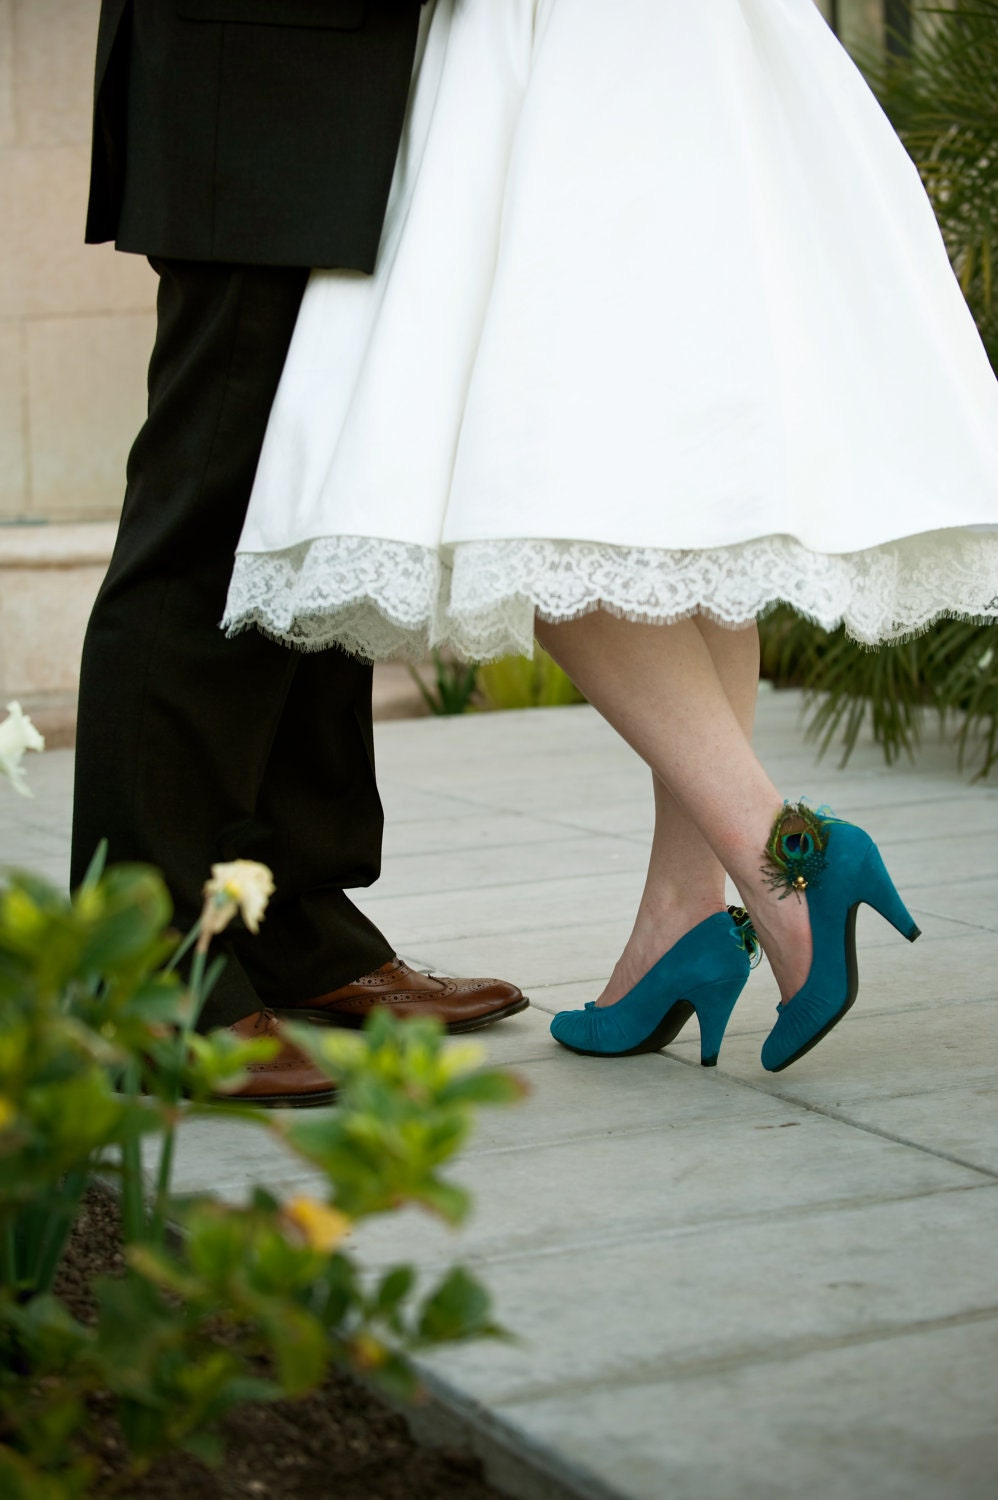 FAELYNN -- Peacock Feather Shoe Clips with Teal and Lime Accenting Feathers Perfect for a Brides Something Blue on Her Wedding Day - KirahleyKreations